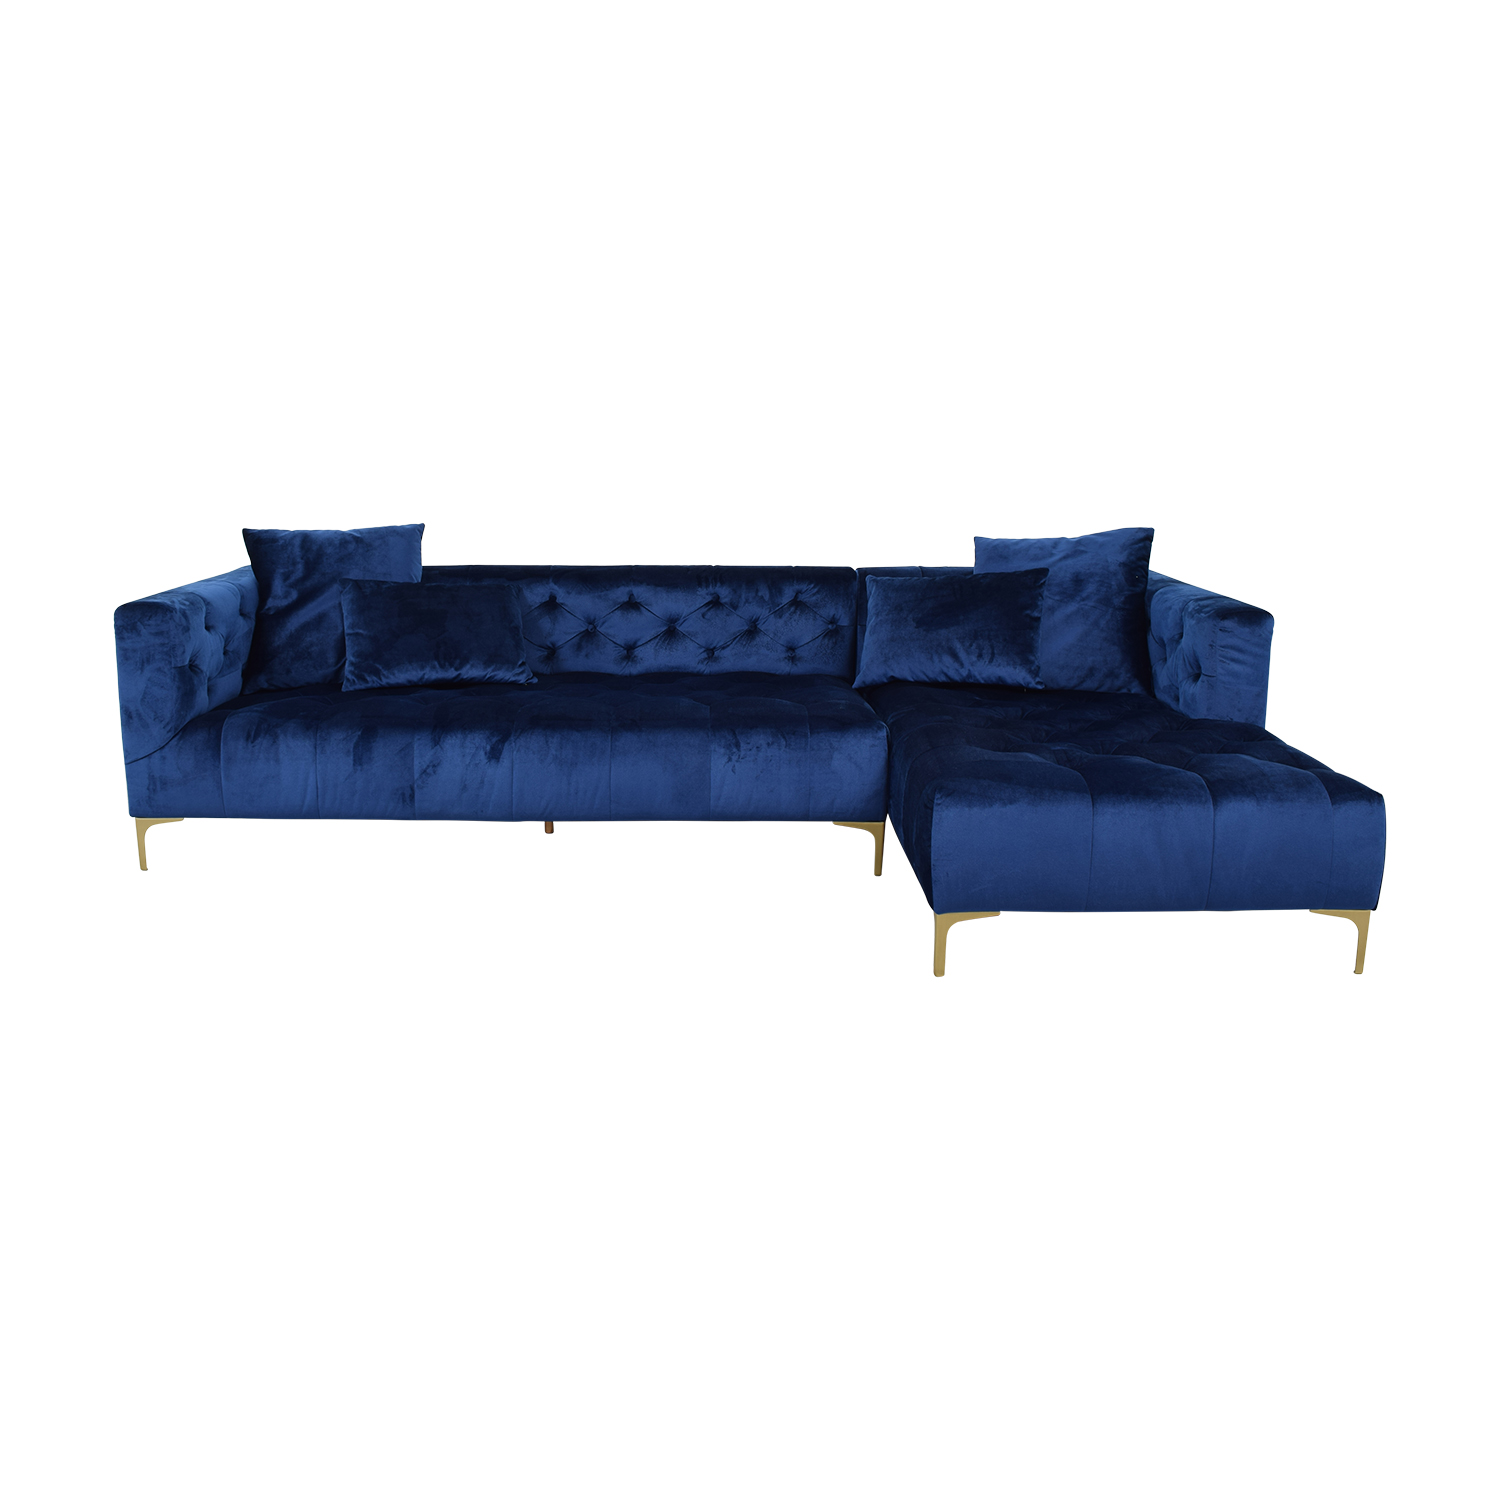 Interior Define Ms. Chesterfield Mod Velvet Oxford Blue Sectional coupon